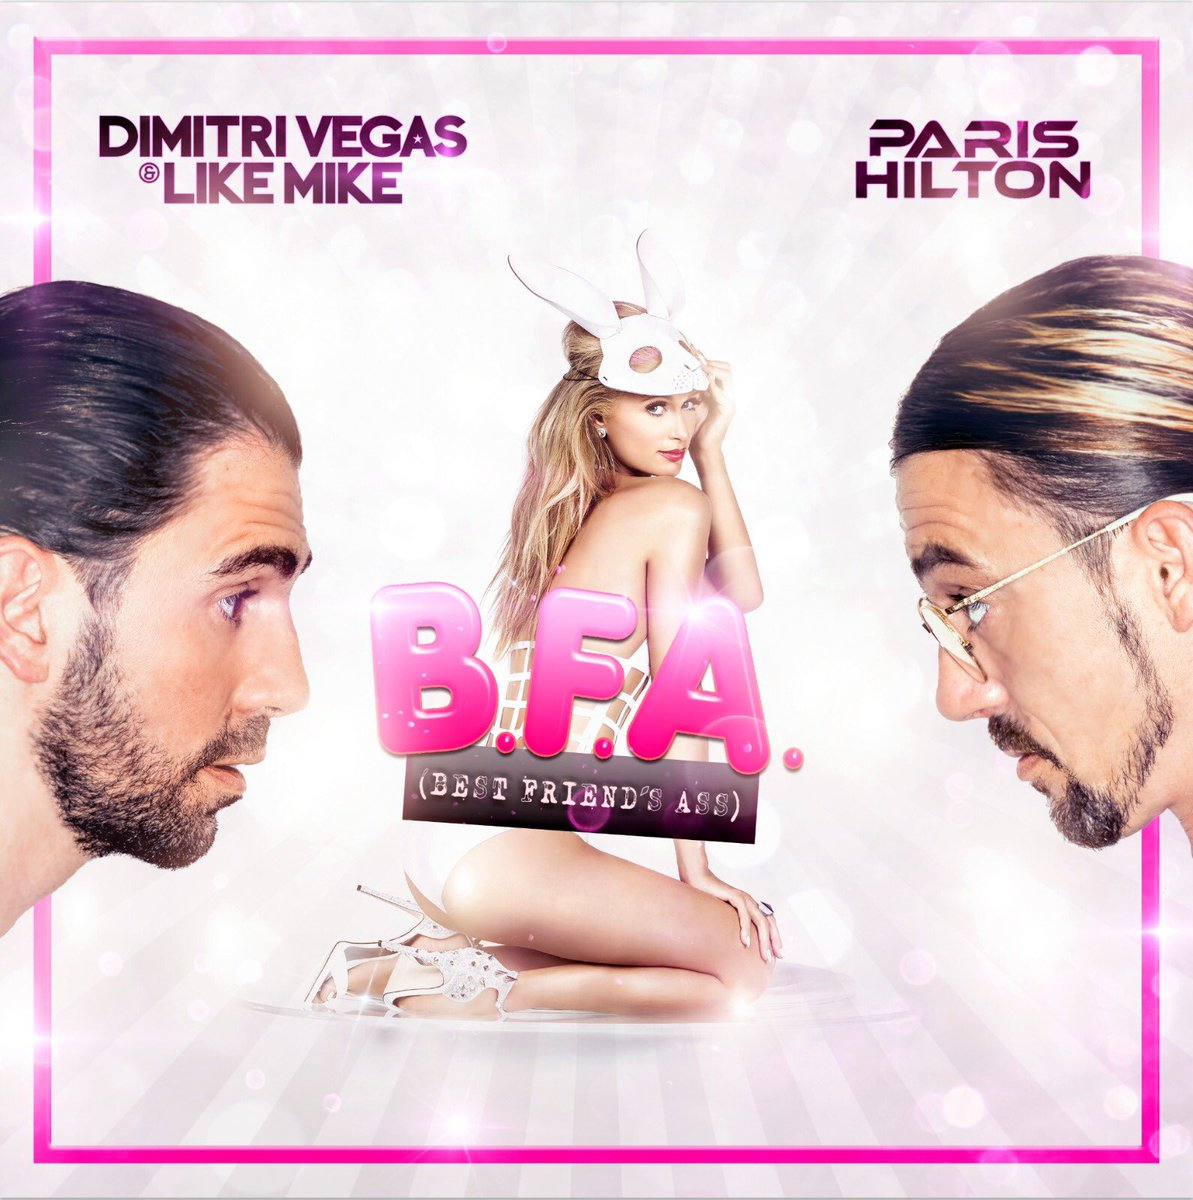 Download my new track #BestFriendsAss with @DimitriVegas & @RealLikeMike on @Spotify. ???????????????? https://t.co/azAFf8flY9